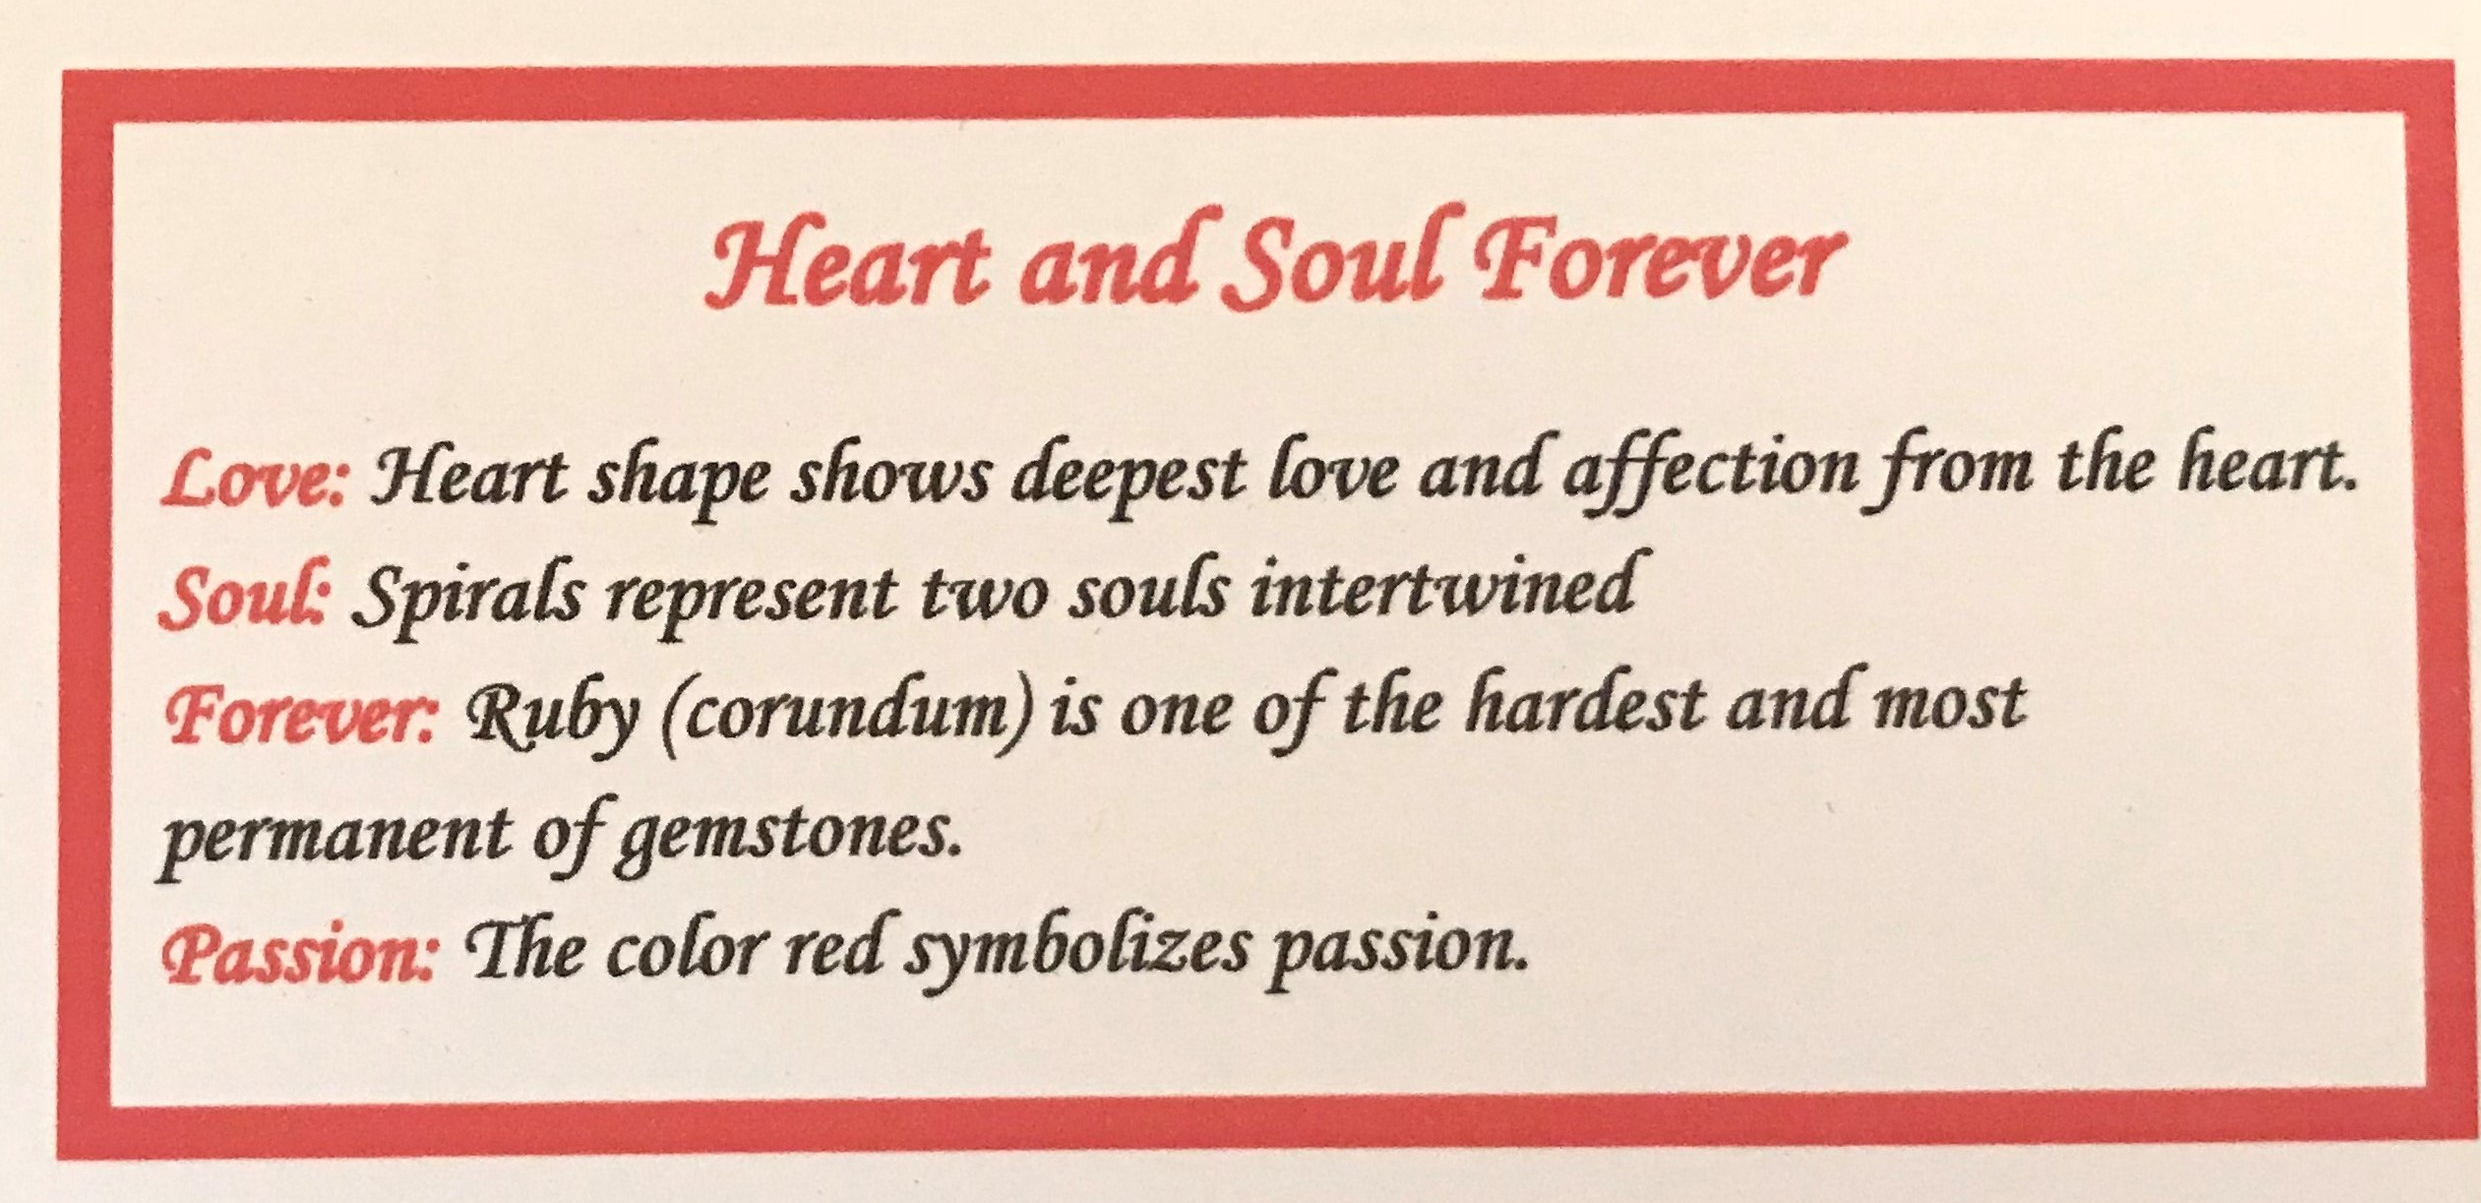 meaning of heart shape